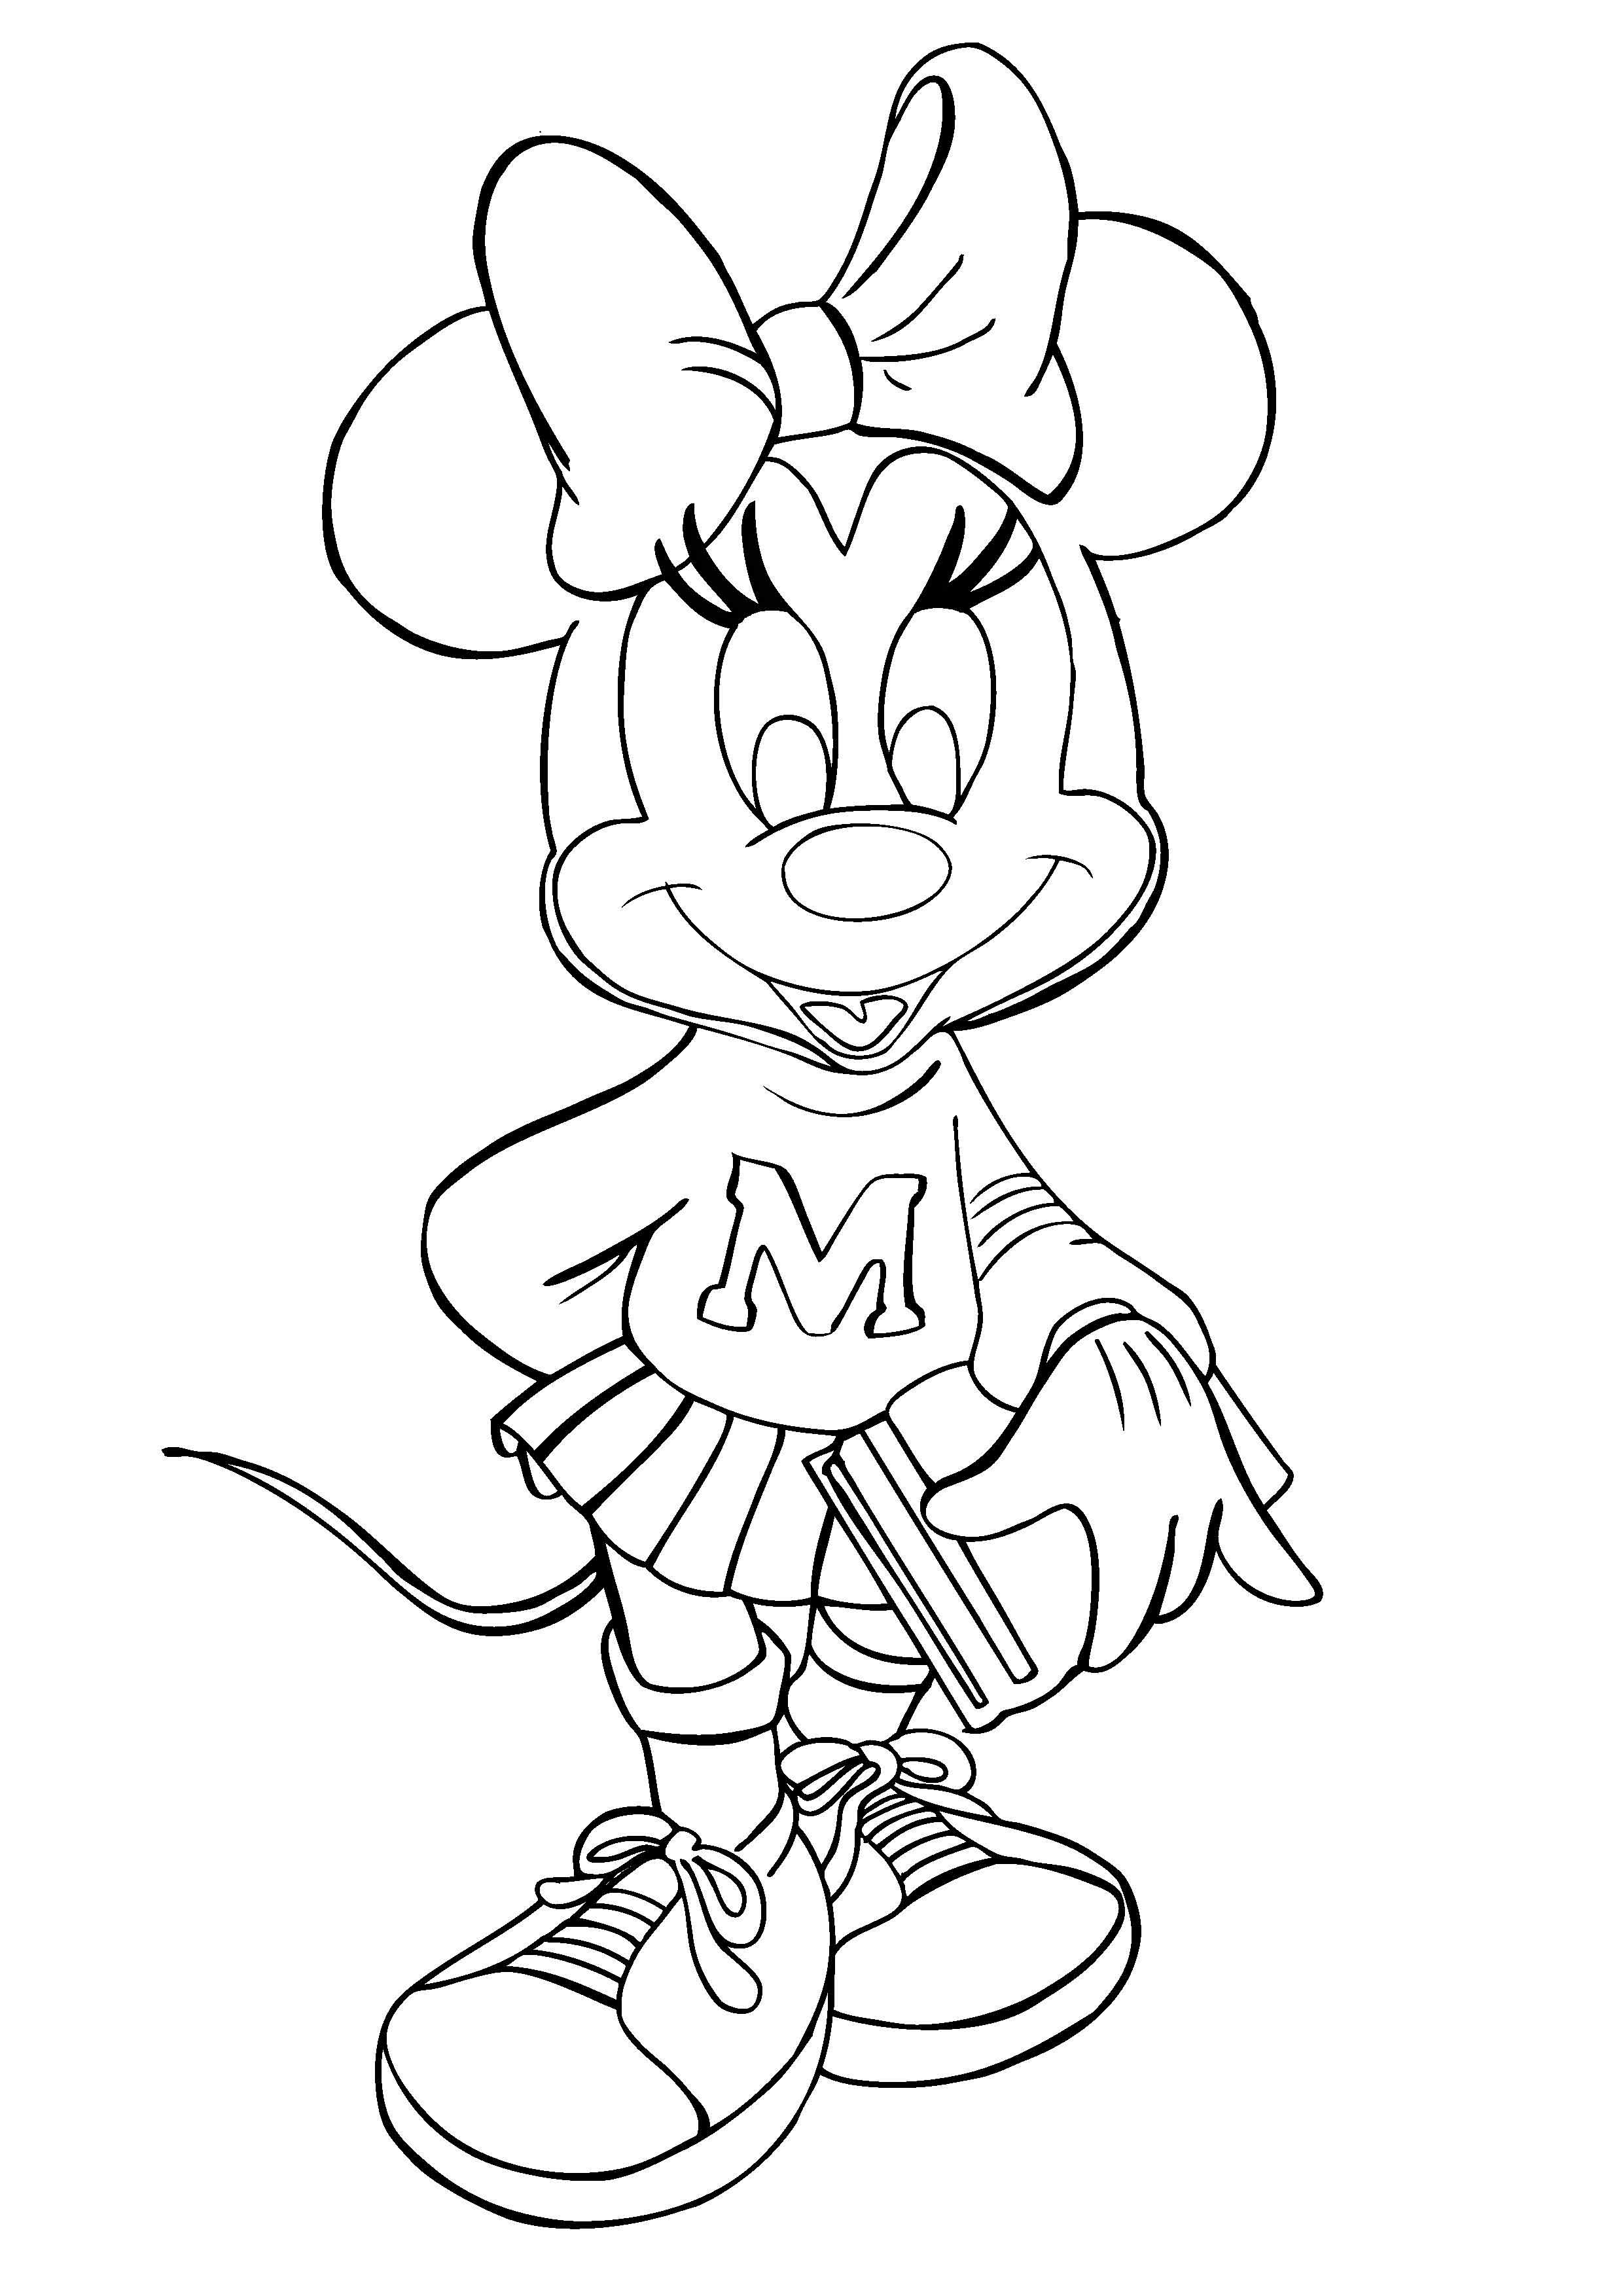 Free Minnie And Daisy Coloring Pages